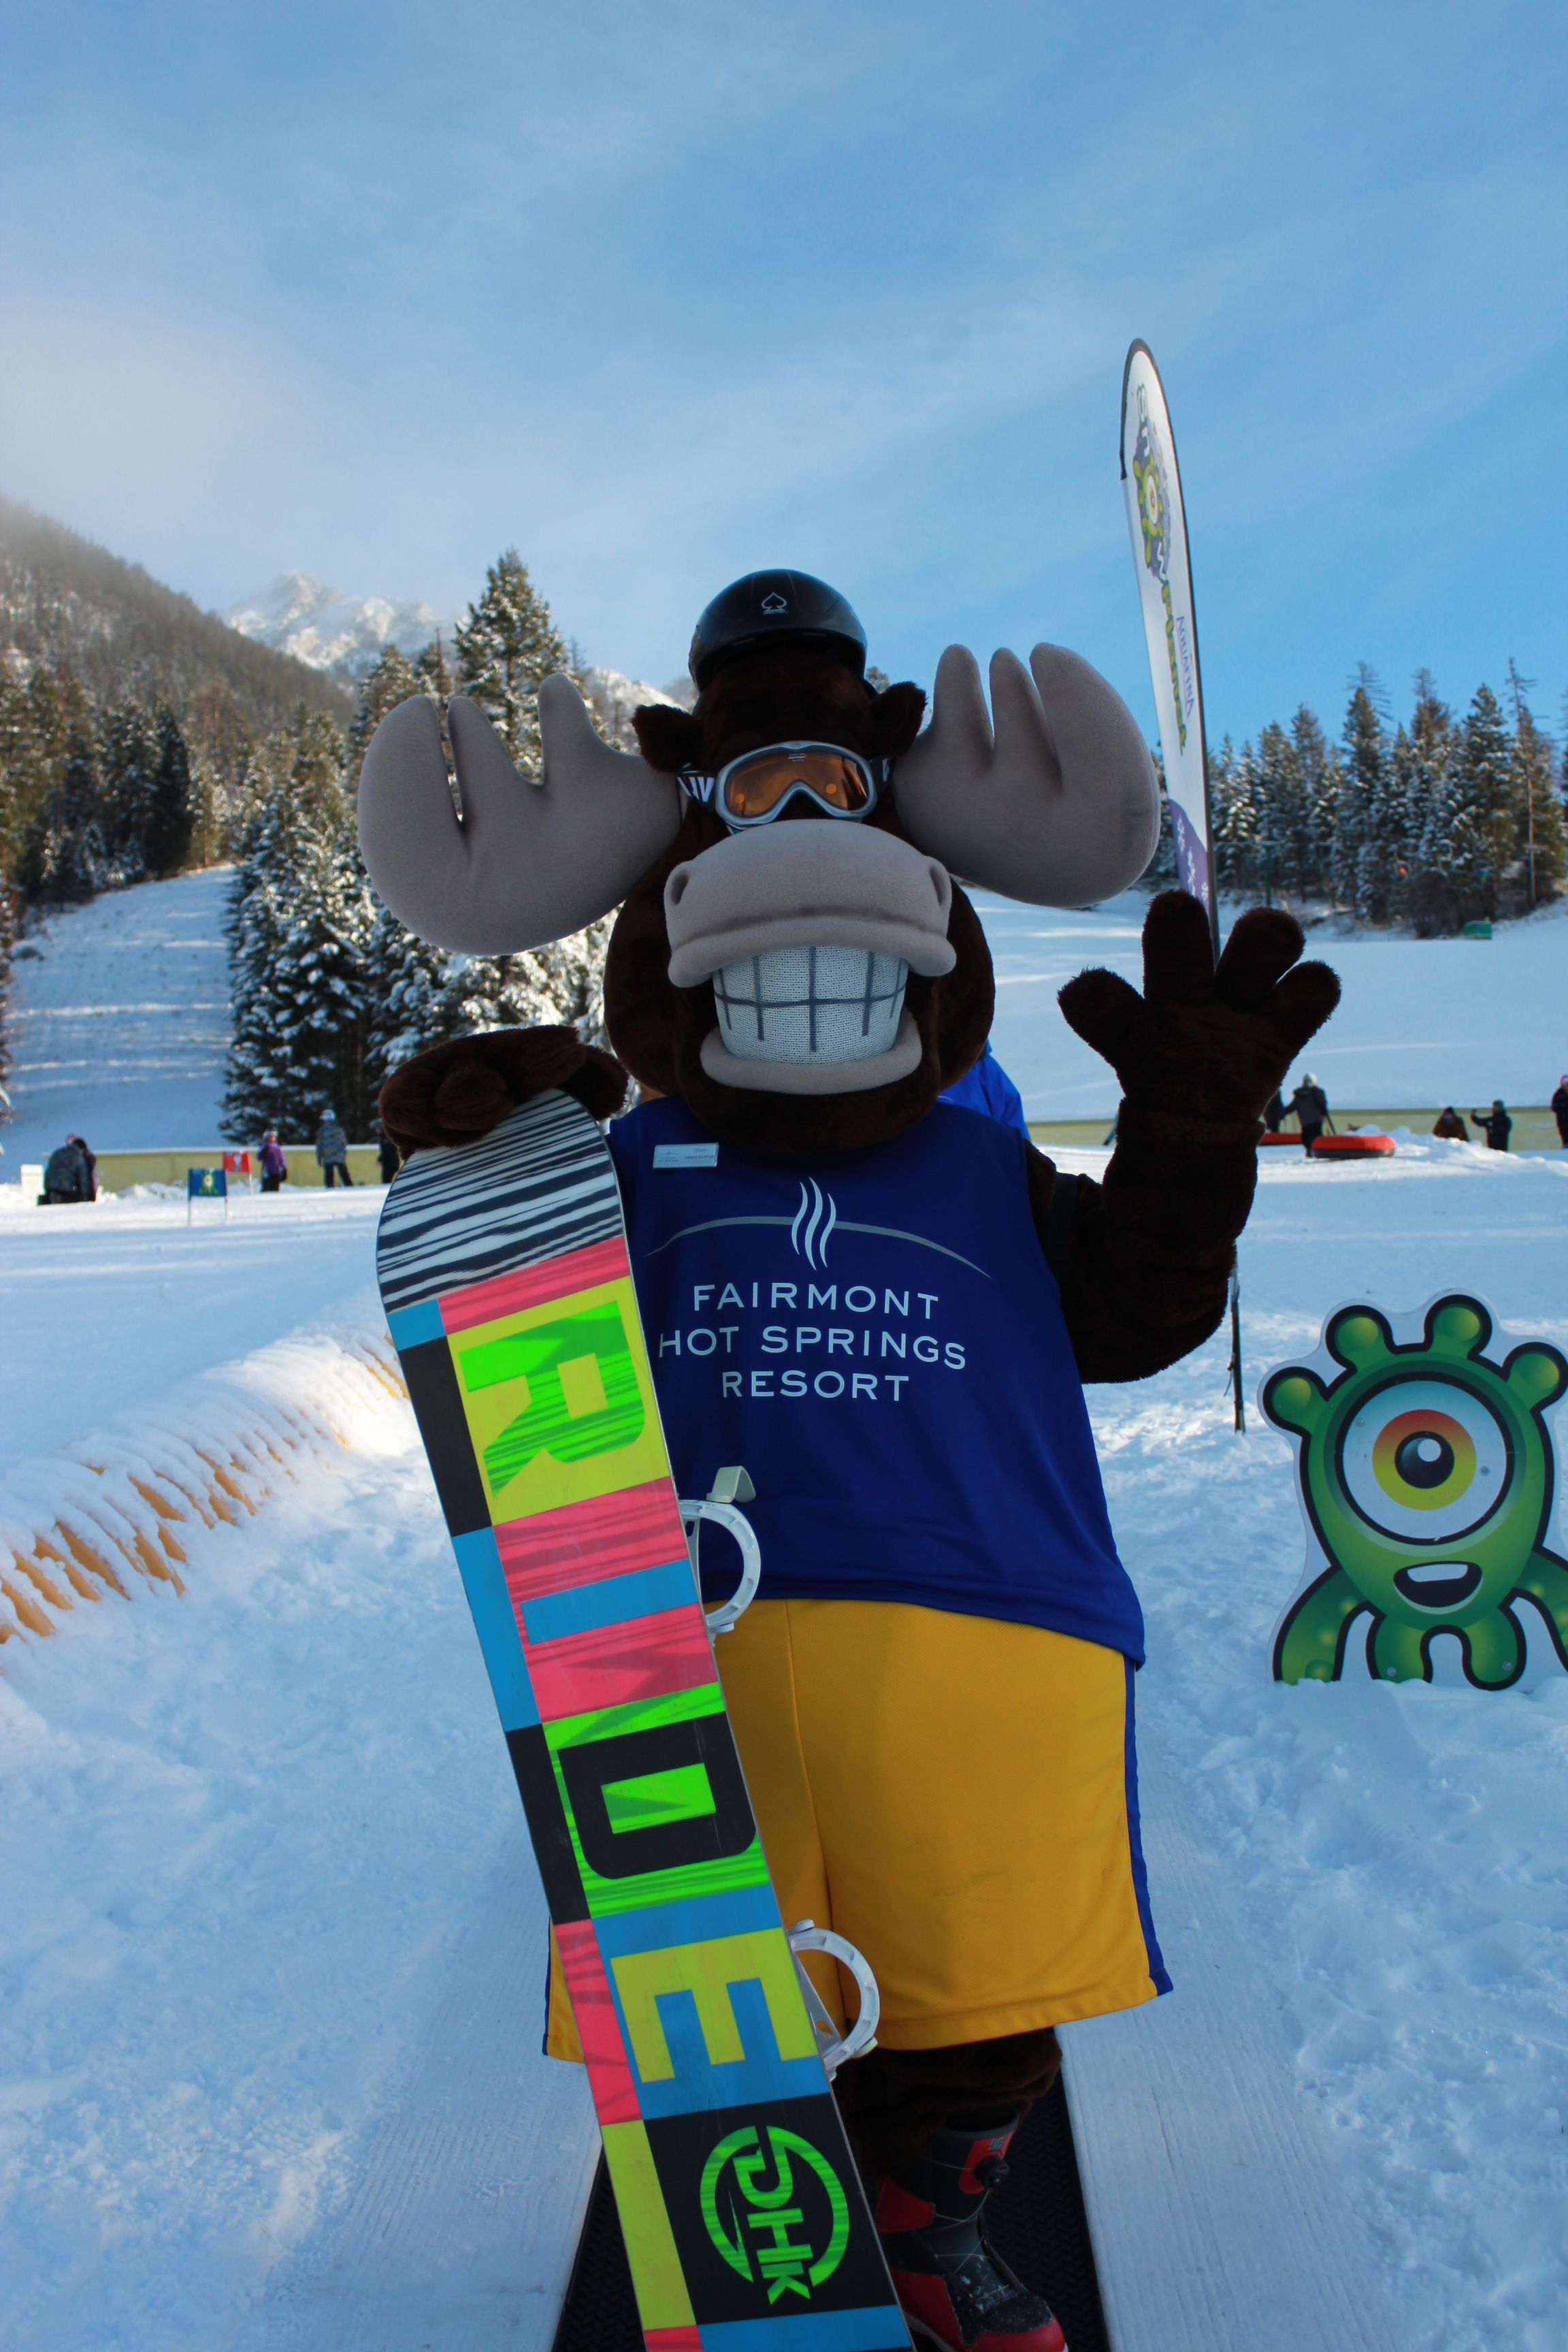 Monty the moose out for a morning ride at our family friendly ski hill! #FHSR #SKIFHSR #monty #moose #winter #snowboard #cvtourism